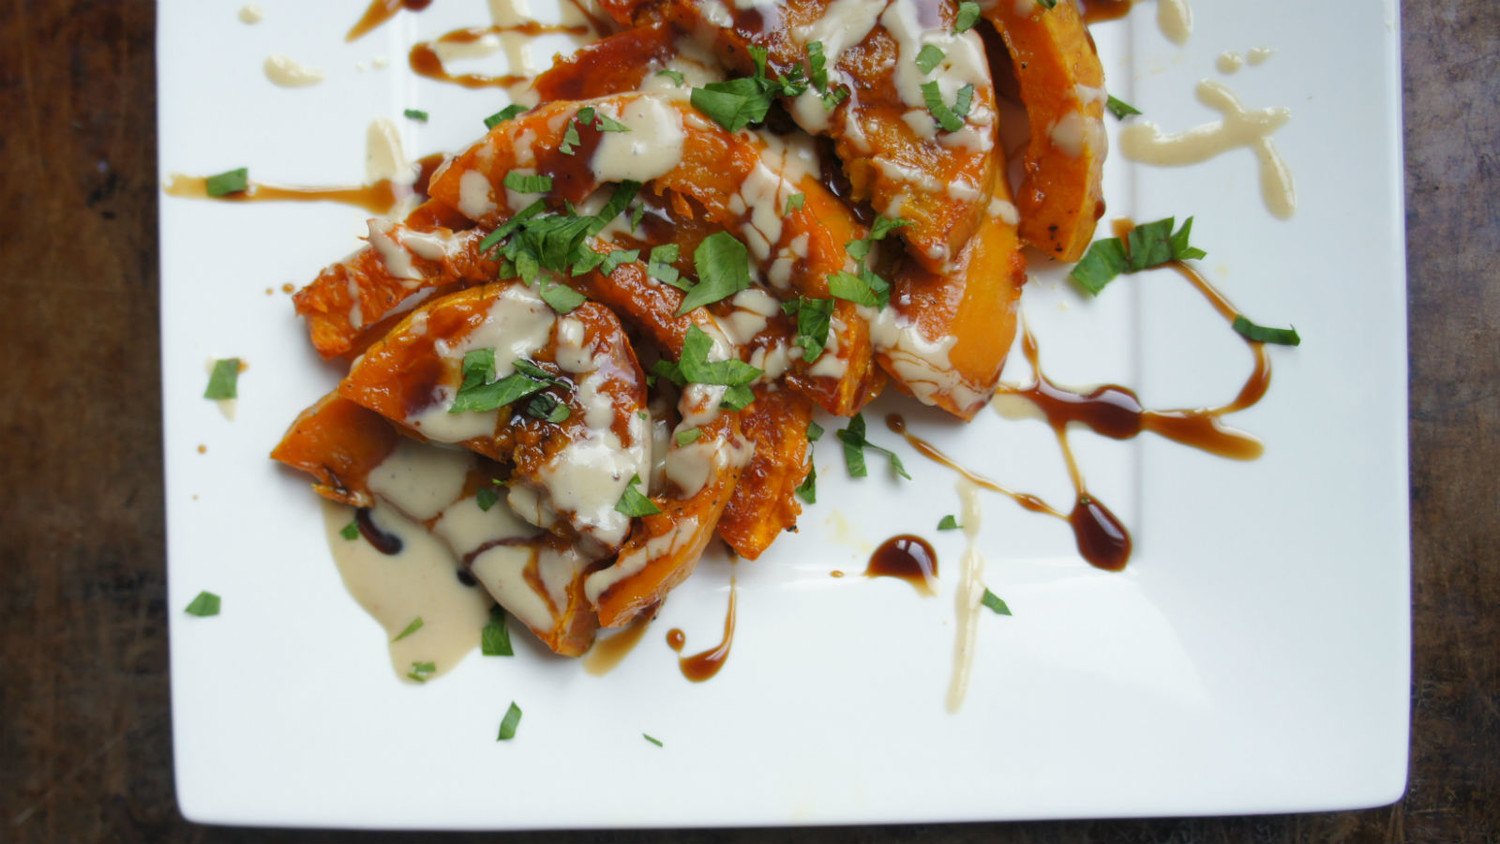 Roasted squash with tahini